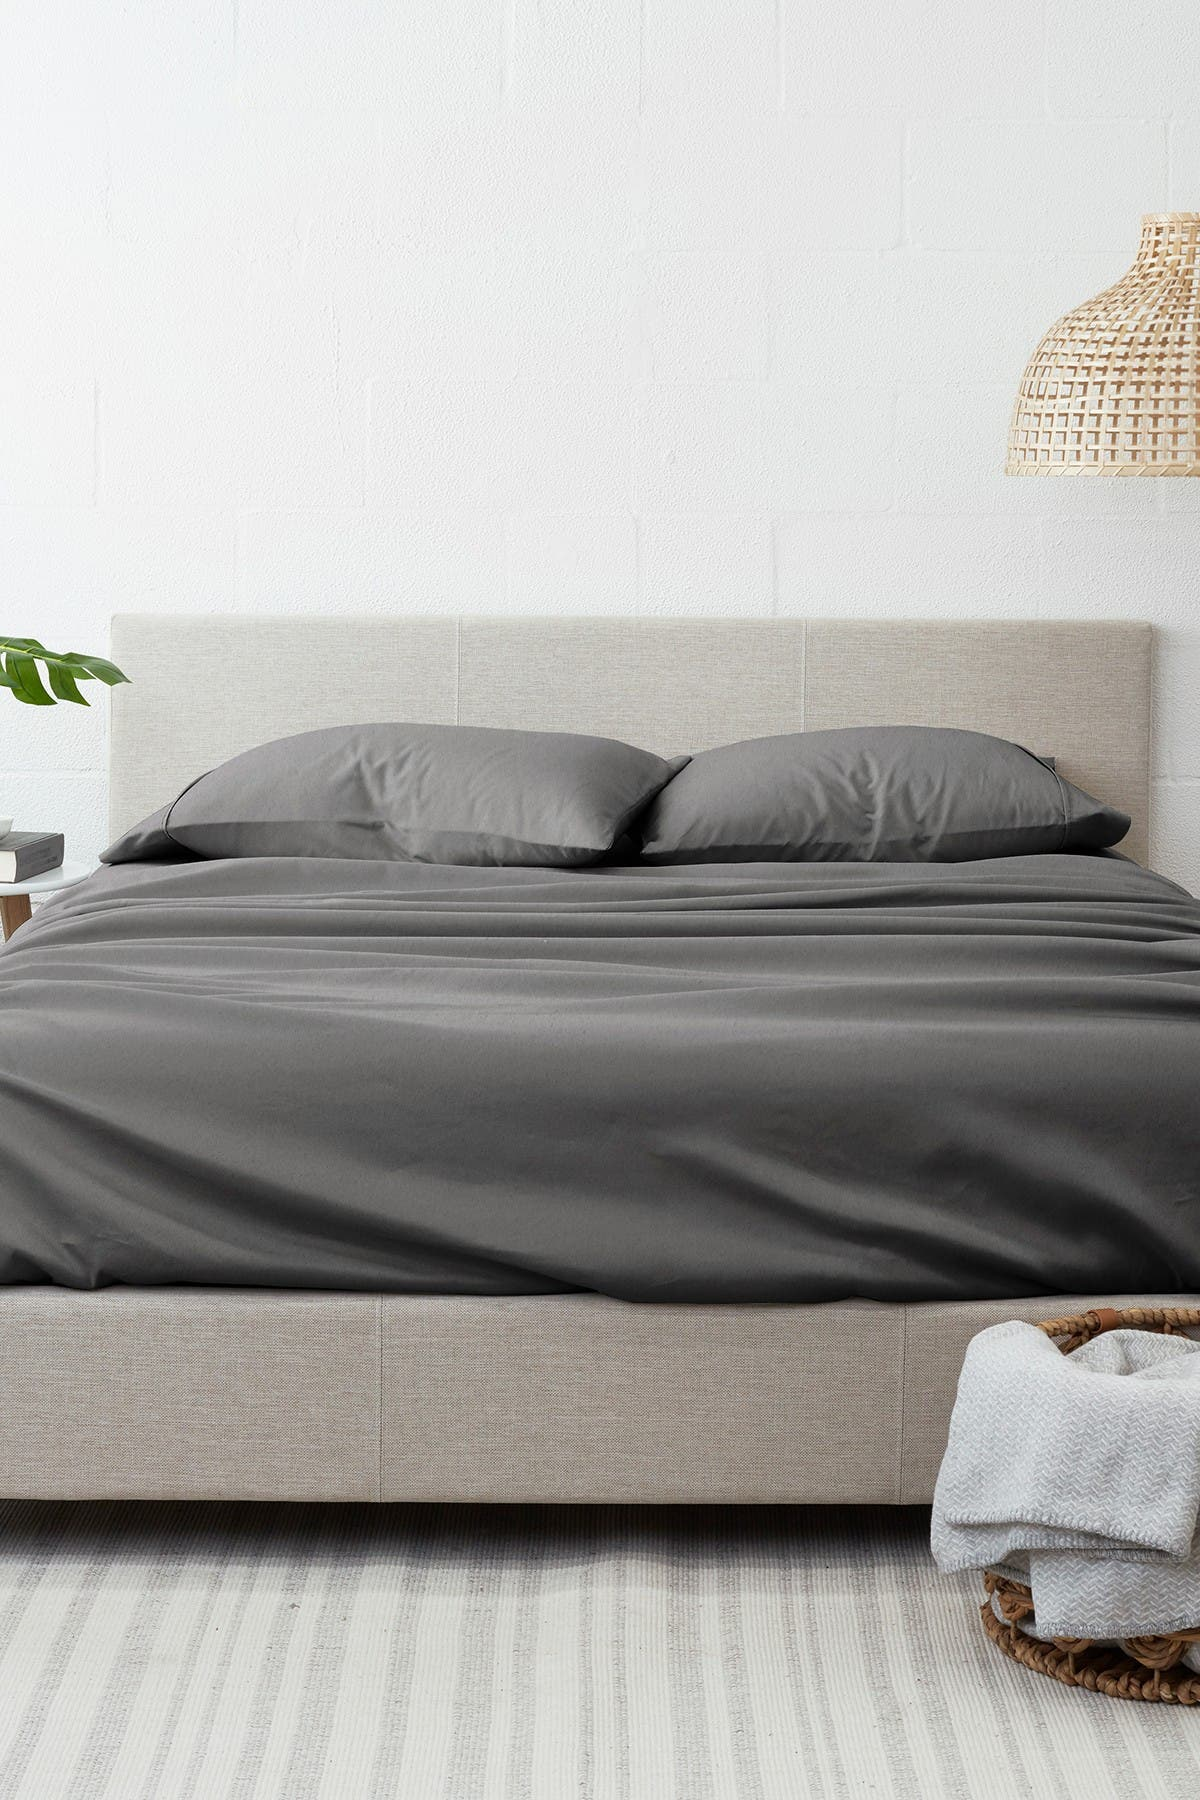 Image of IENJOY HOME Home Collection Premium 4-Piece Queen Ultra Soft Flannel Bed Sheet Set - Gray